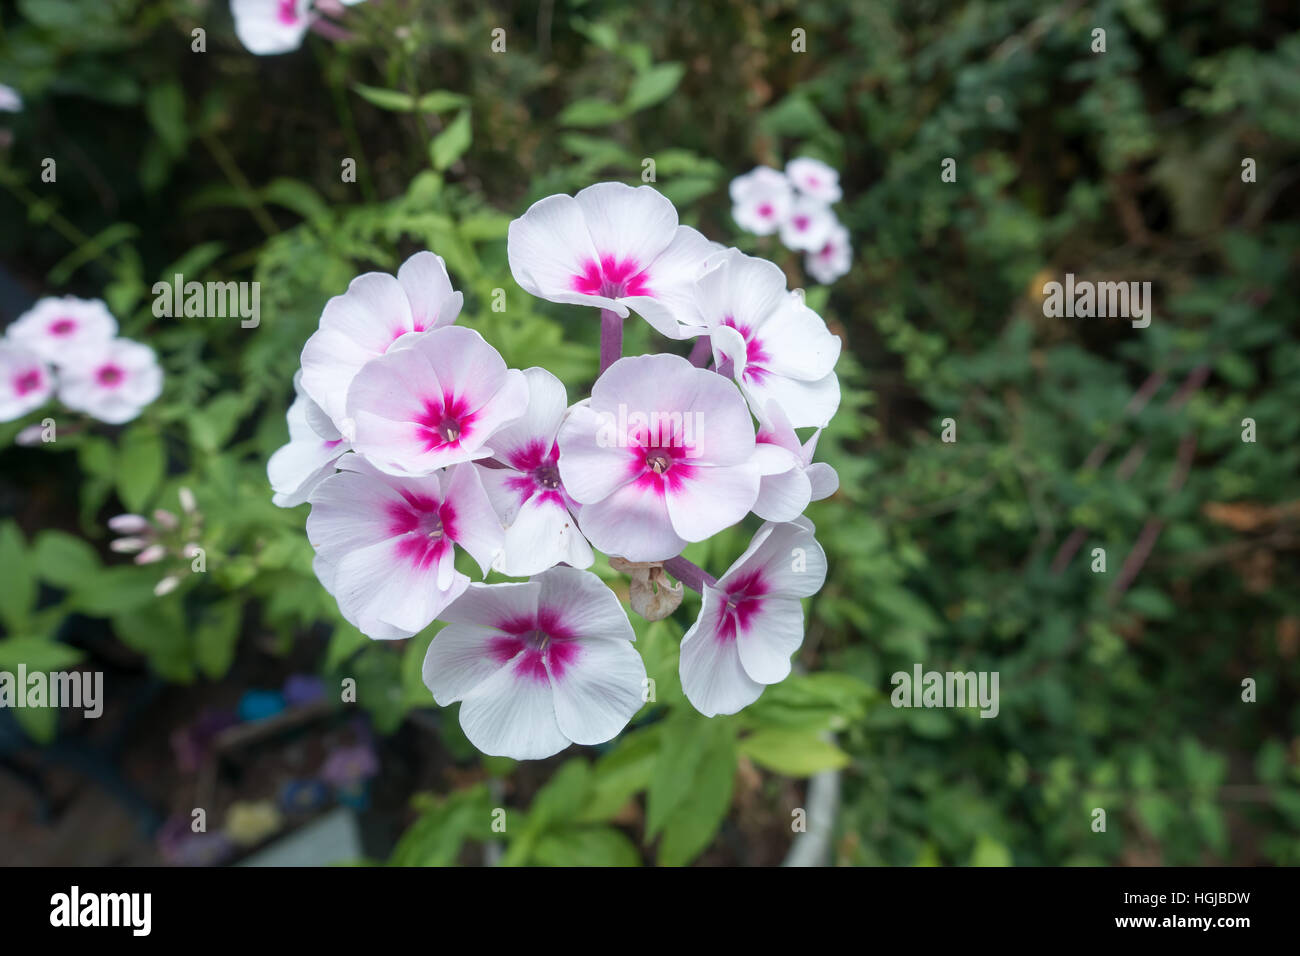 Closeup Of A Cluster Of Small Pink And White Flowers Stock Photo